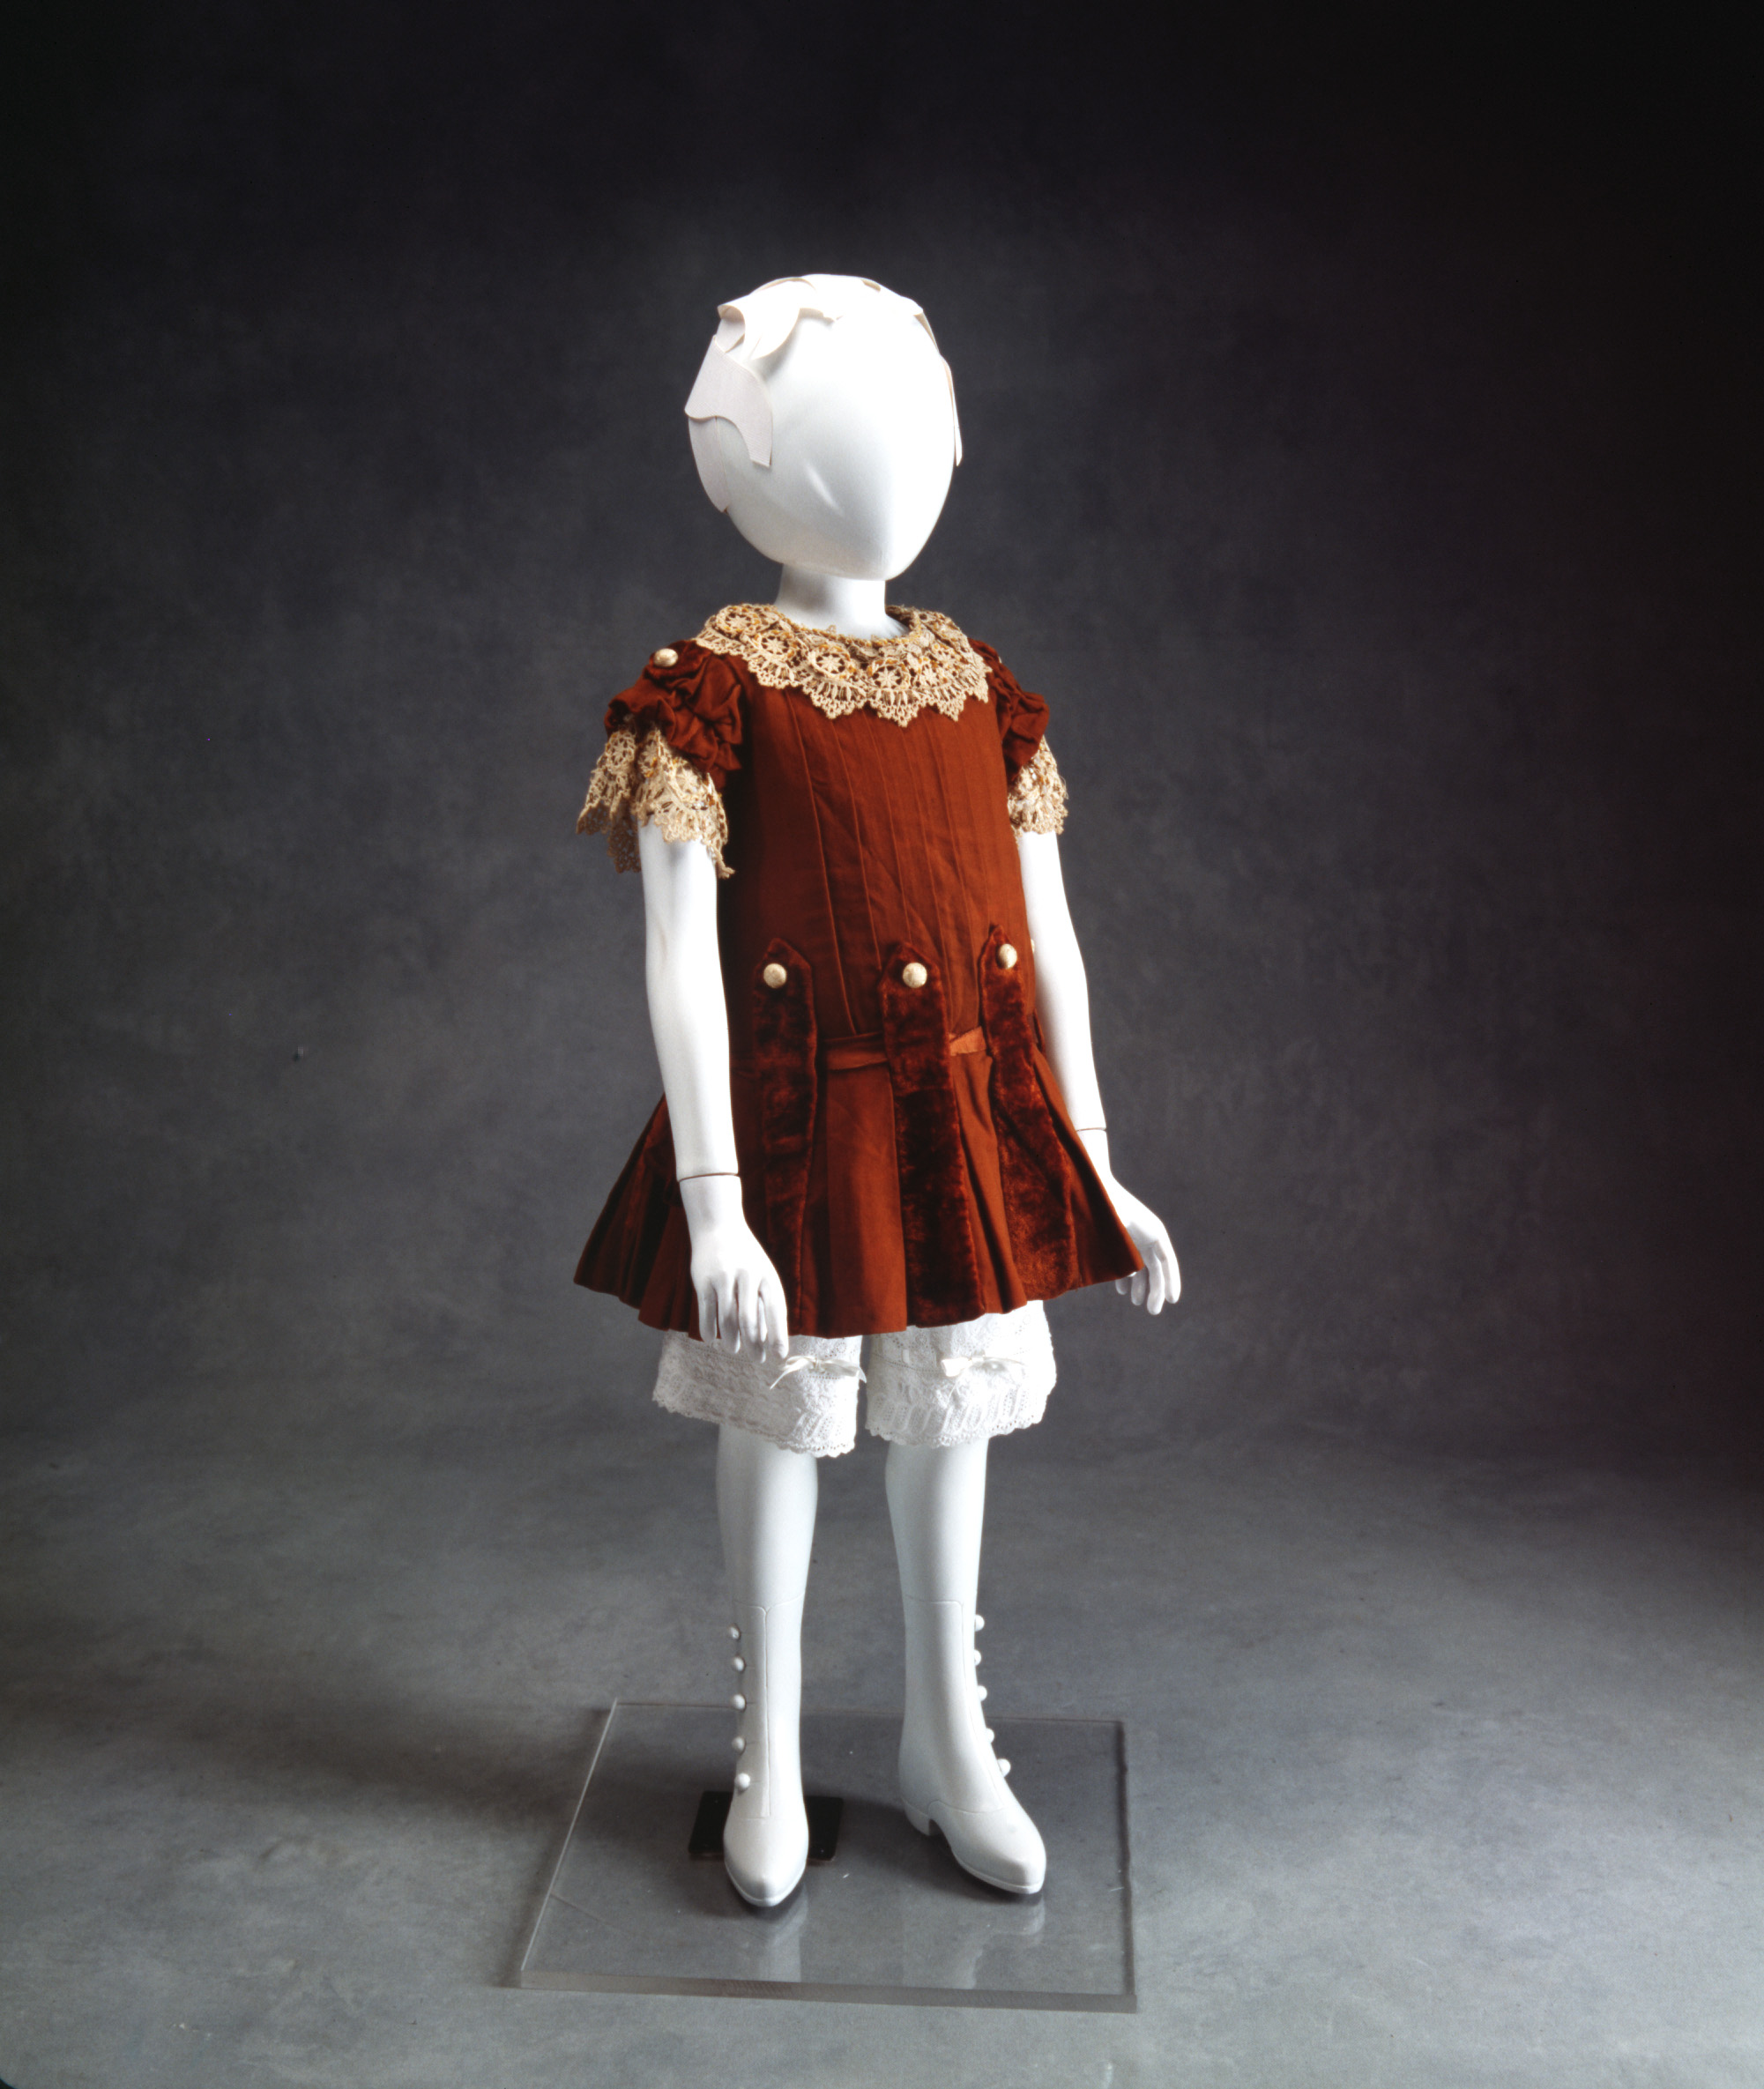 Boys' Clothing in the Early 20th Century